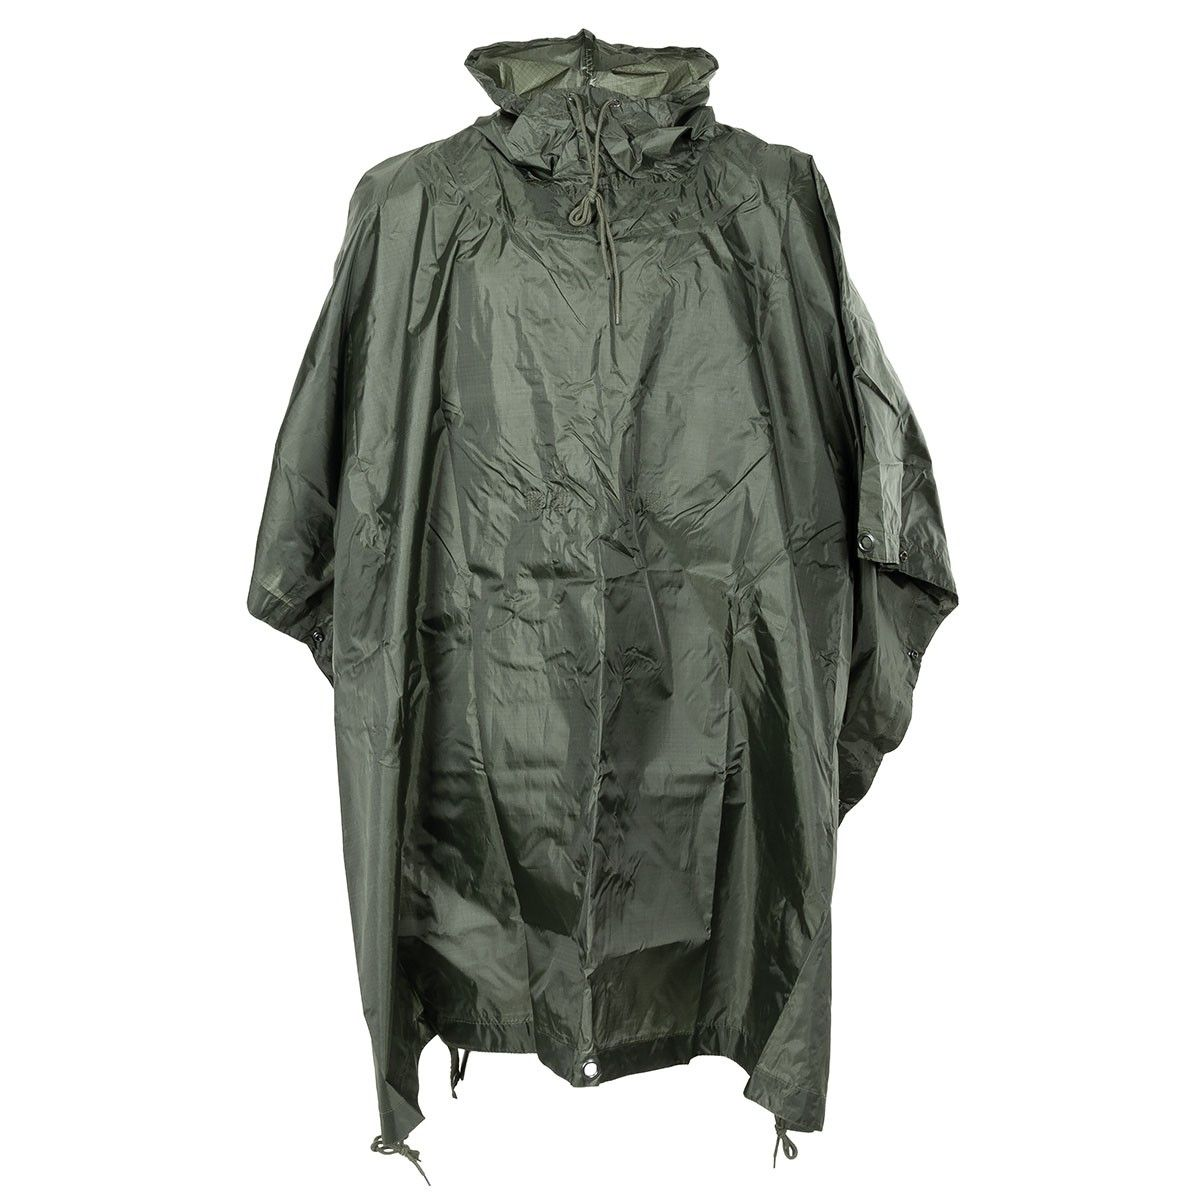 Mfh Us Army Military Style Poncho Green